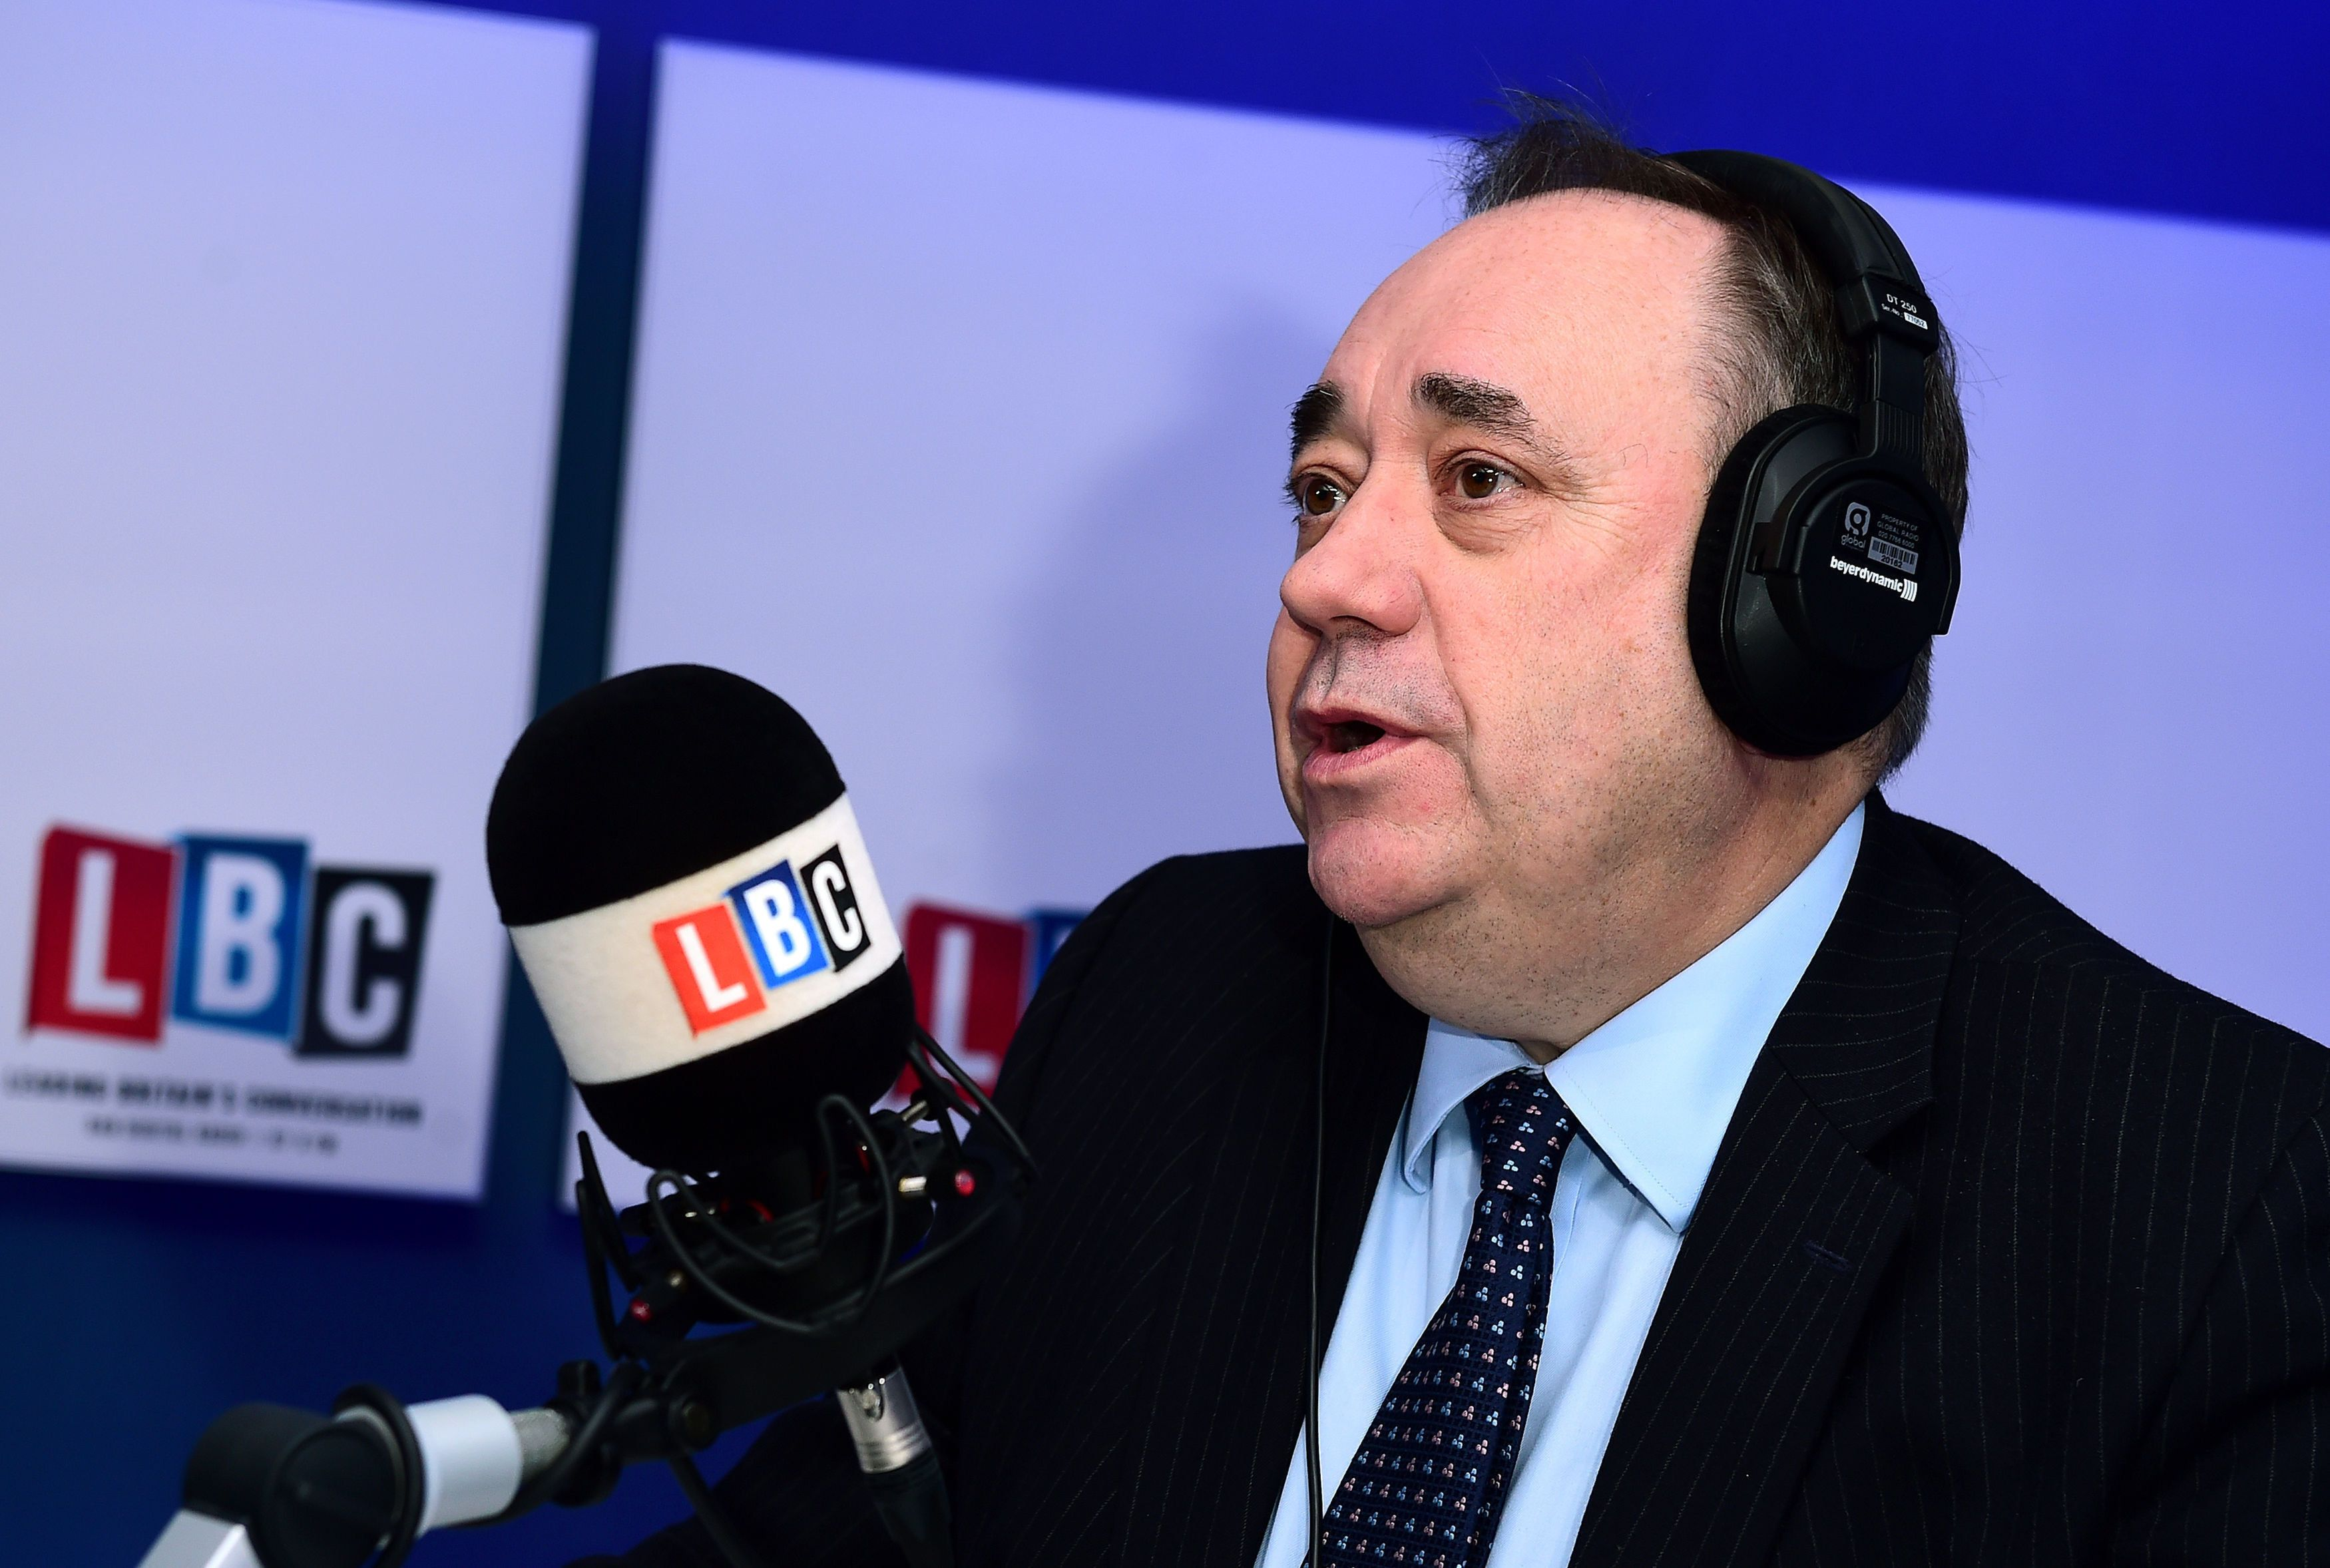 Alex Salmond's LBC show has come to an